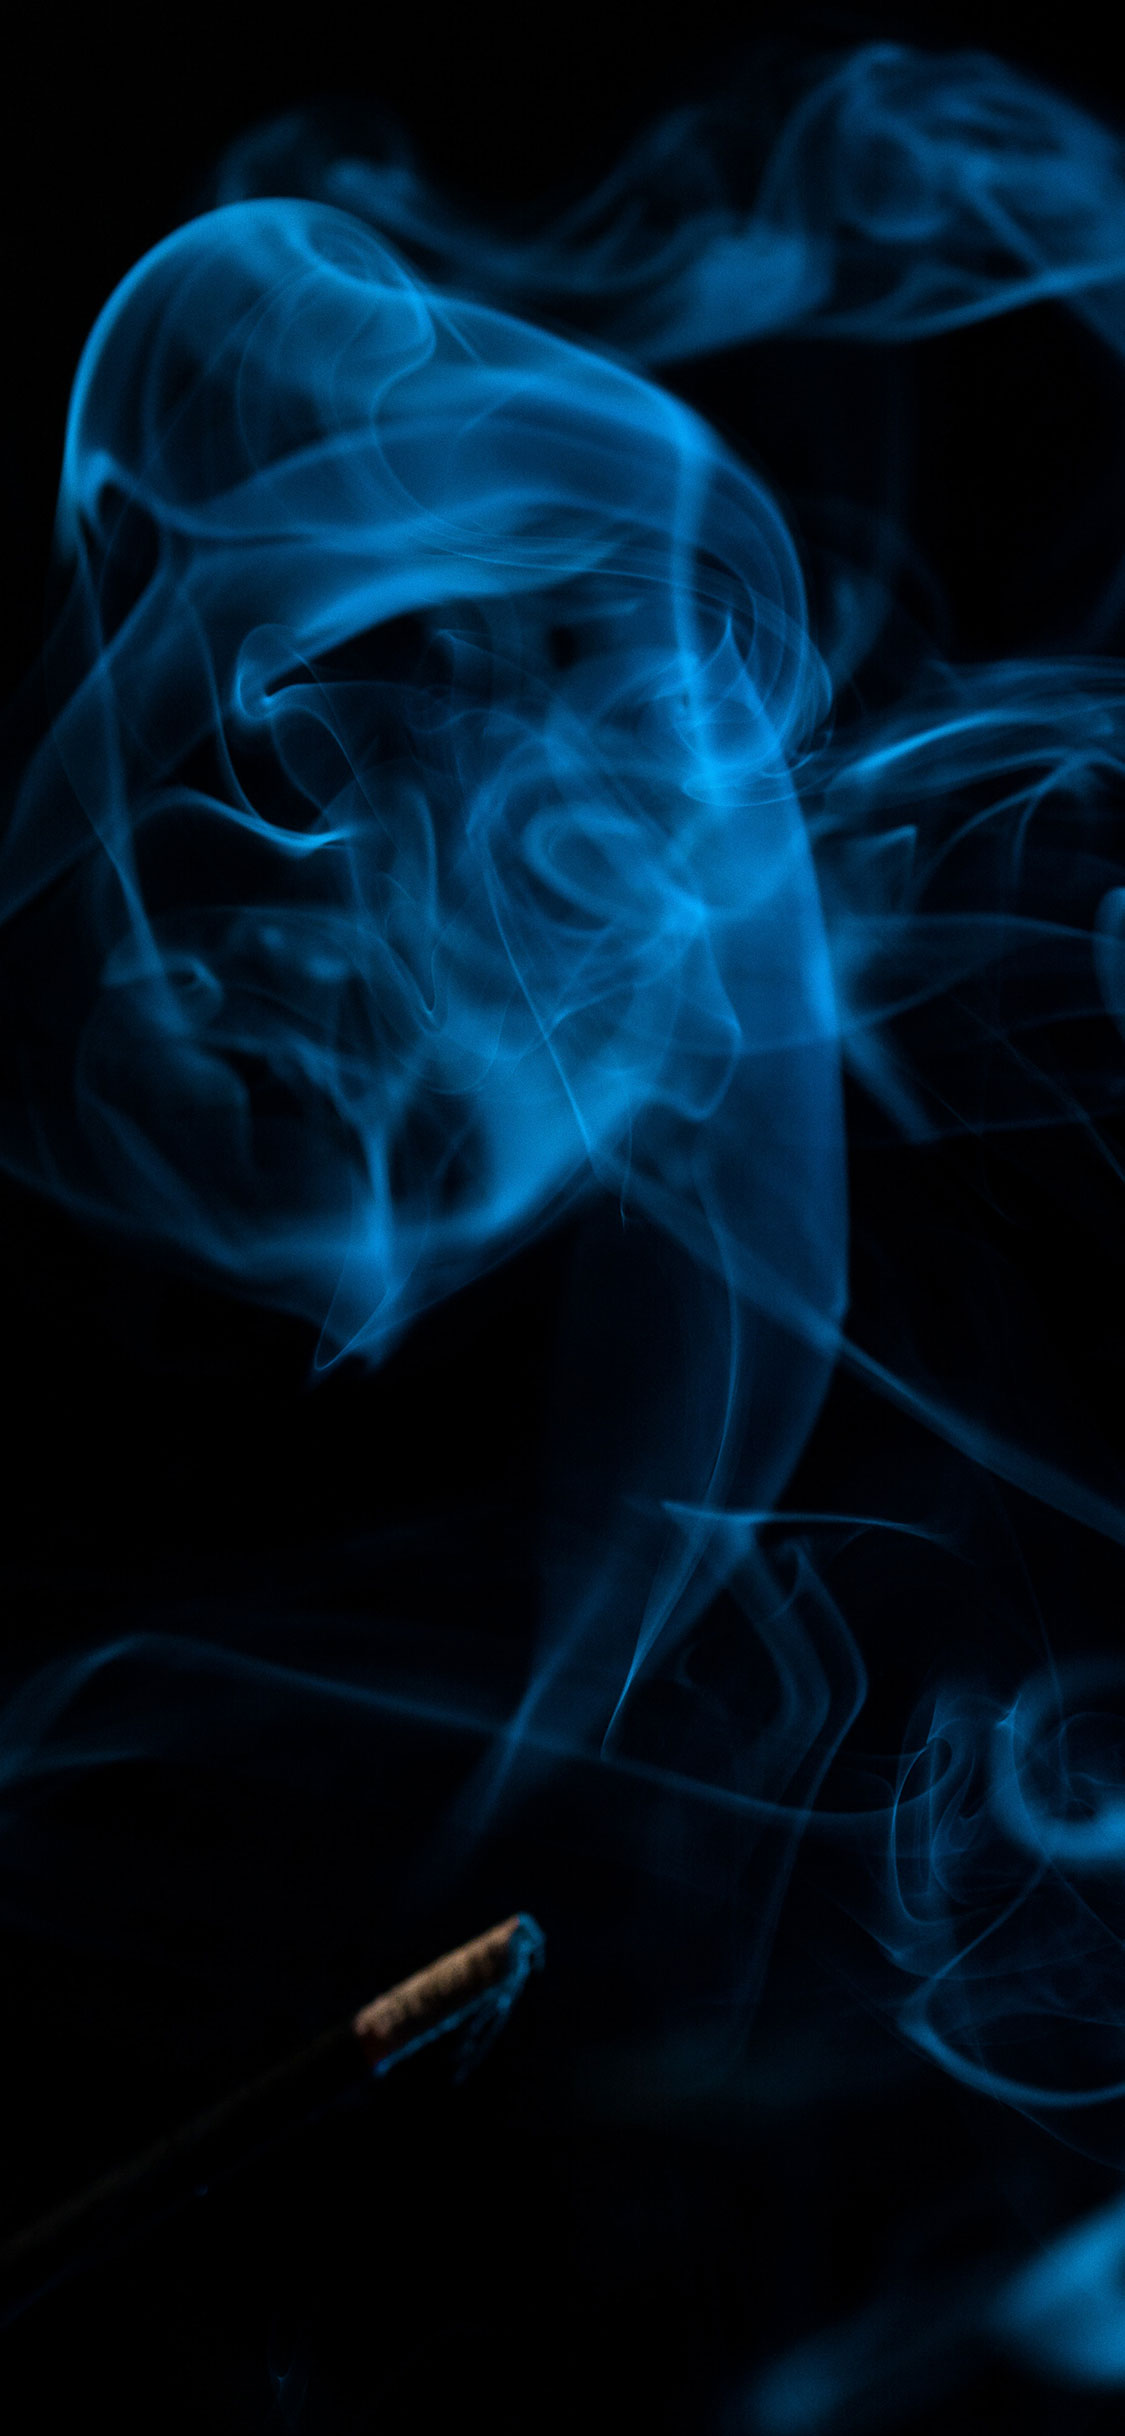 iPhone wallpaper smoke blue Fonds d'écran iPhone du 02/08/2018